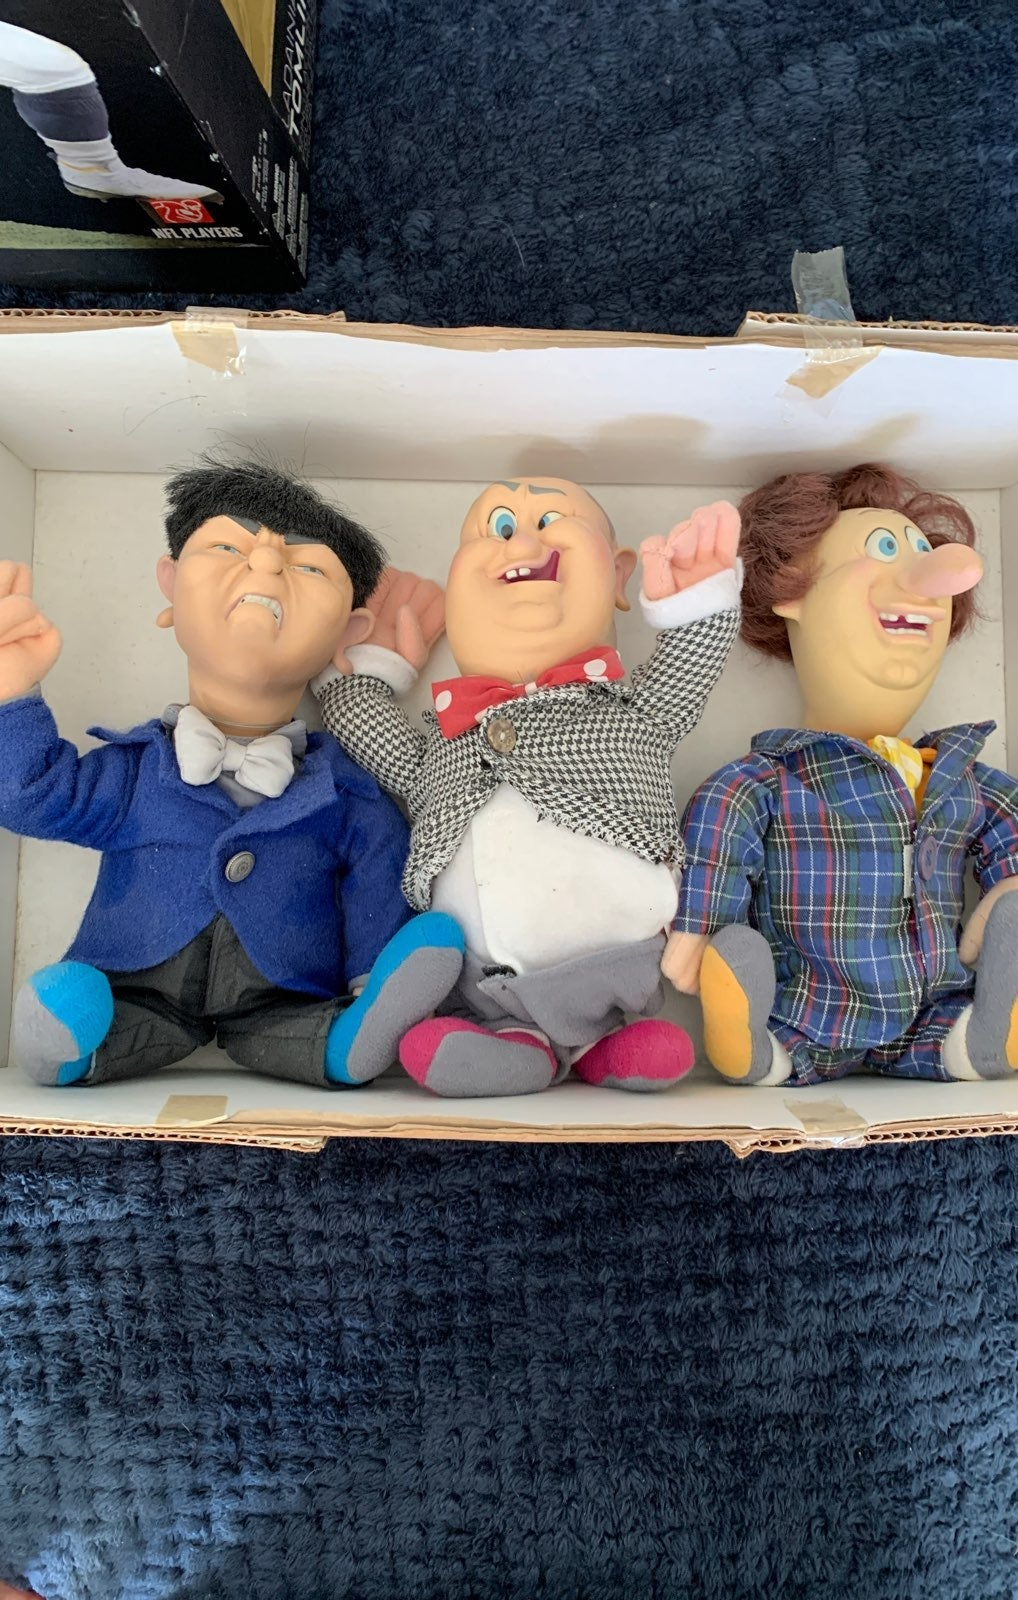 The three stooges figures collectibles